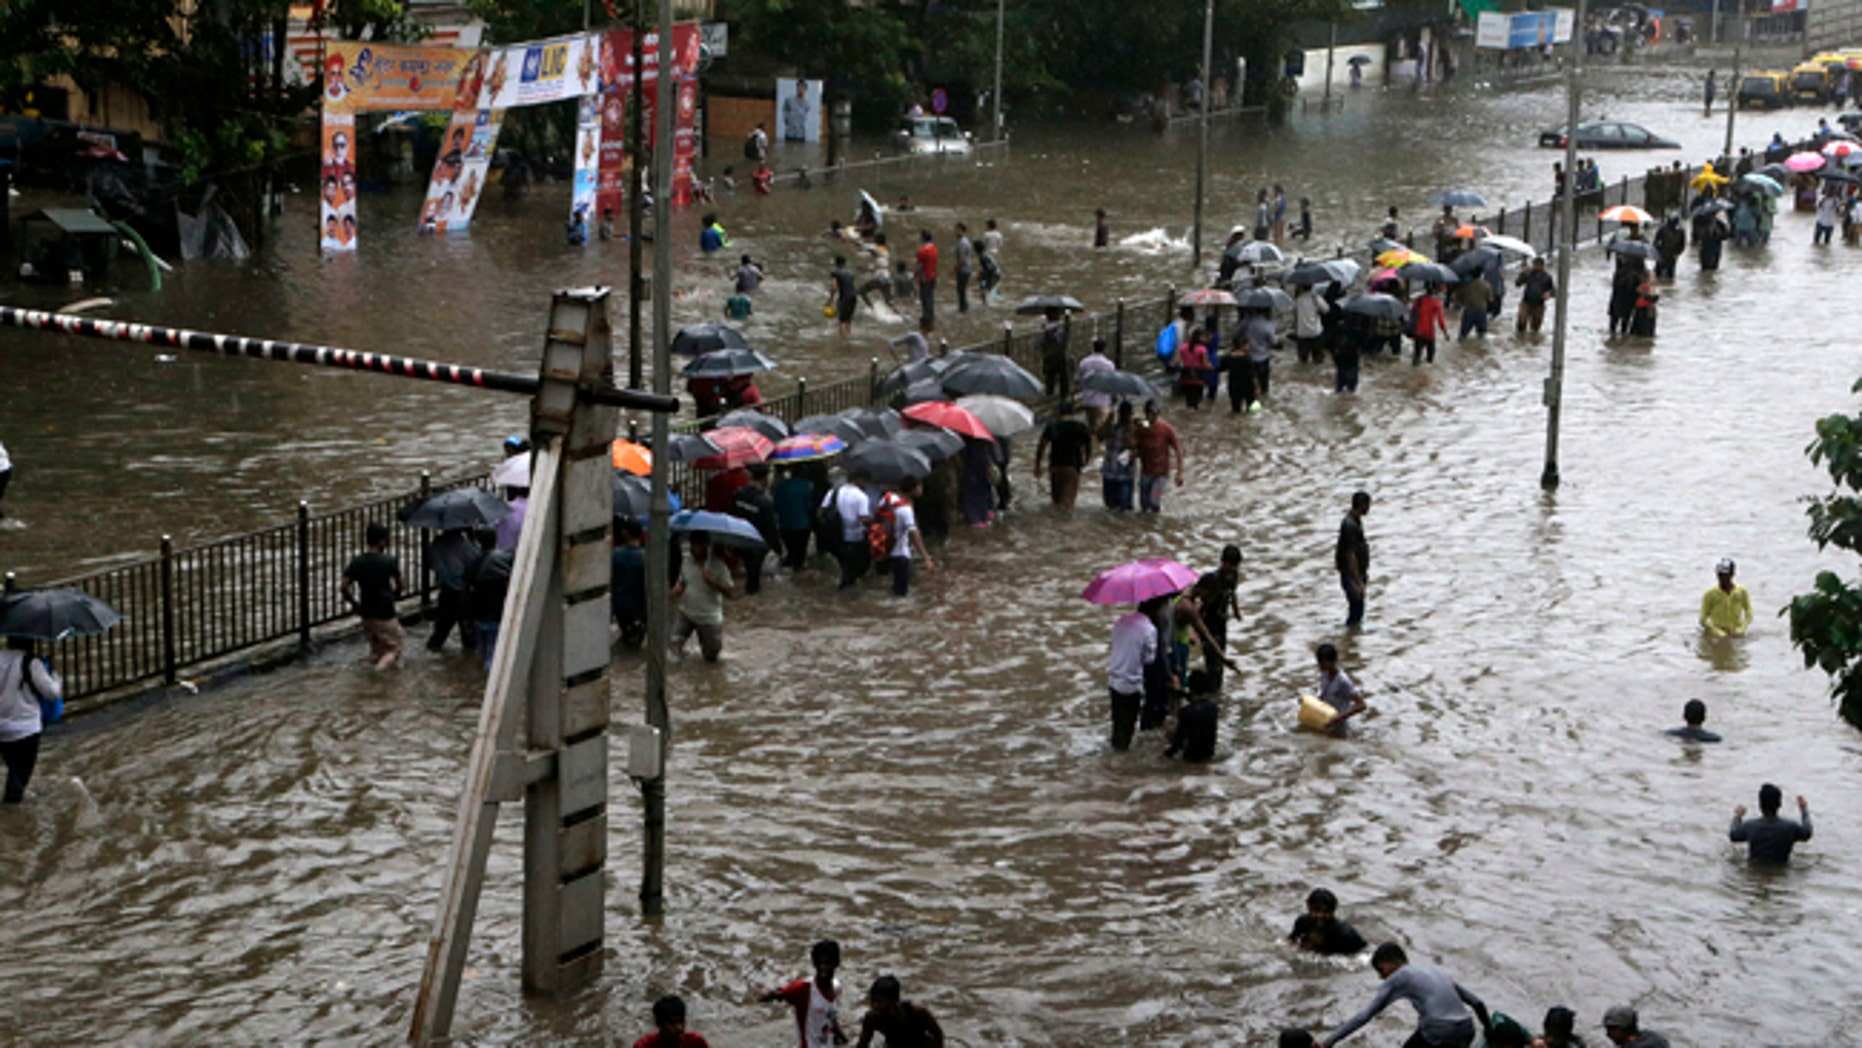 People walk through a waterlogged street after heavy rains in Mumbia, India.